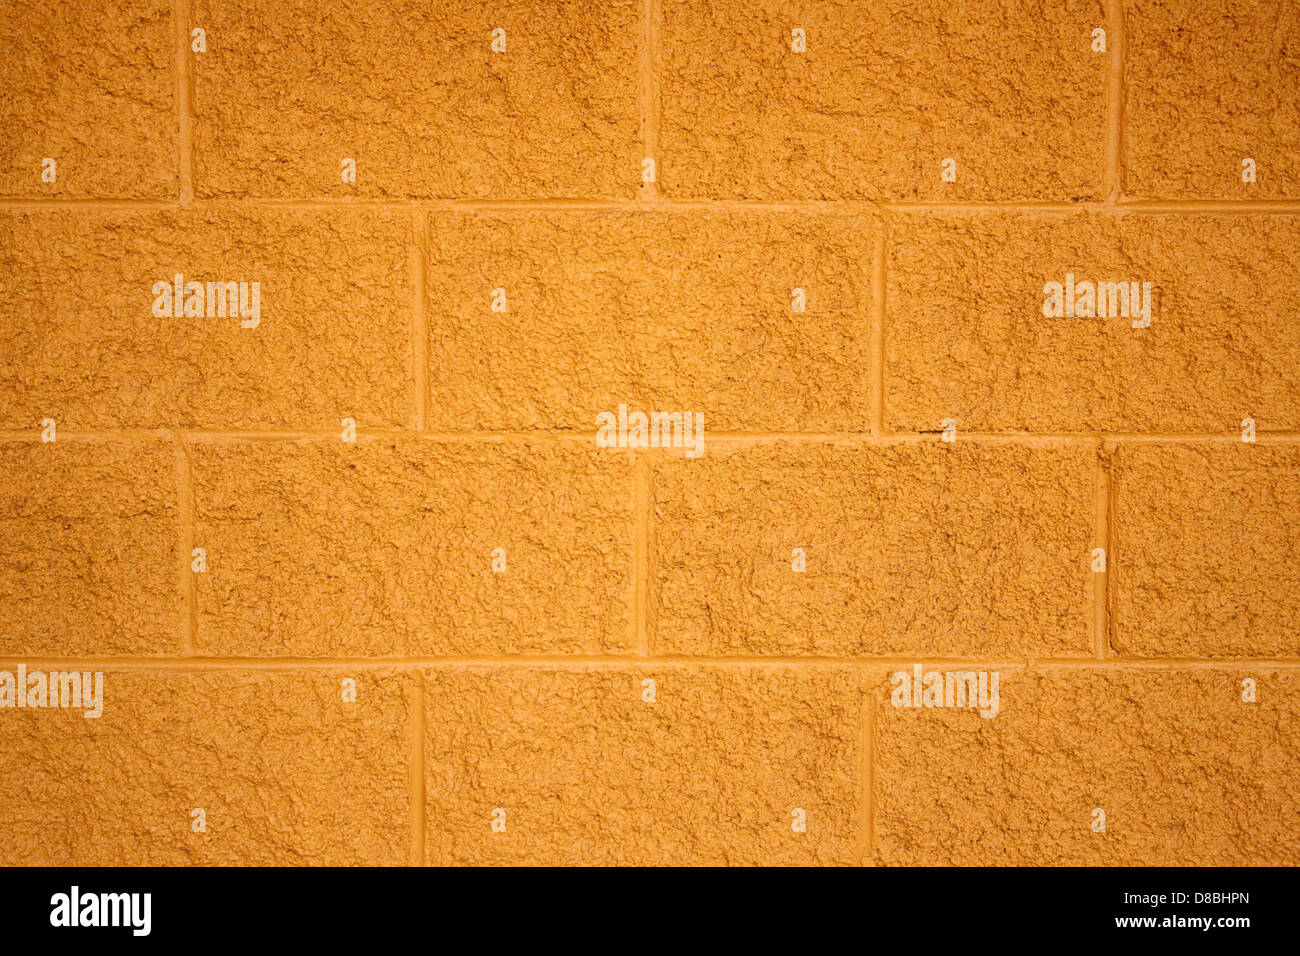 Painted cinder block wall texture - Stock Photo Painted Yellow Cinder Block Wall Texture